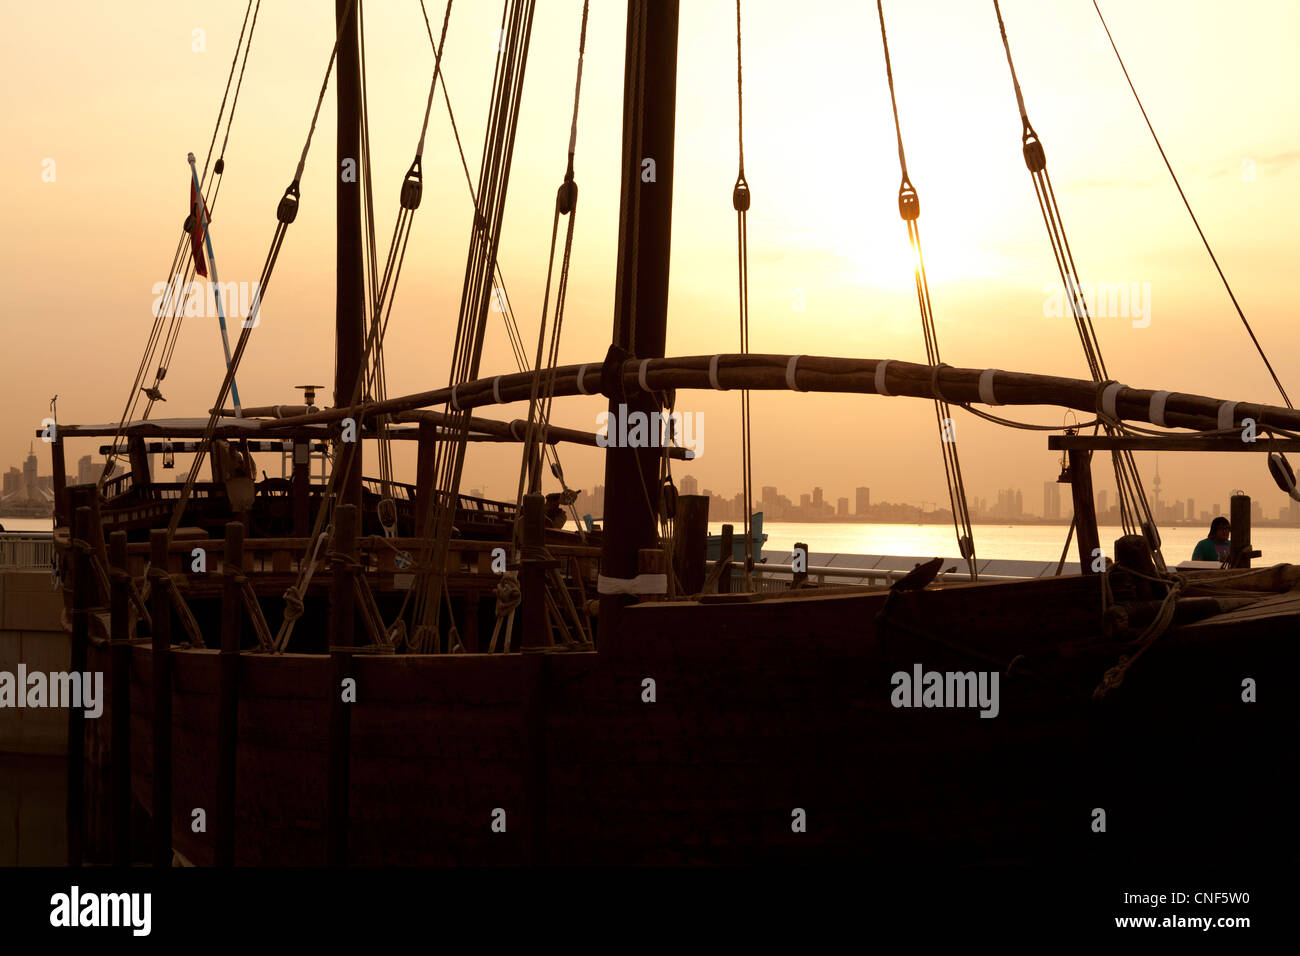 Silhouette of a Dhow at sunset in Kuwait with the city in the background. - Stock Image